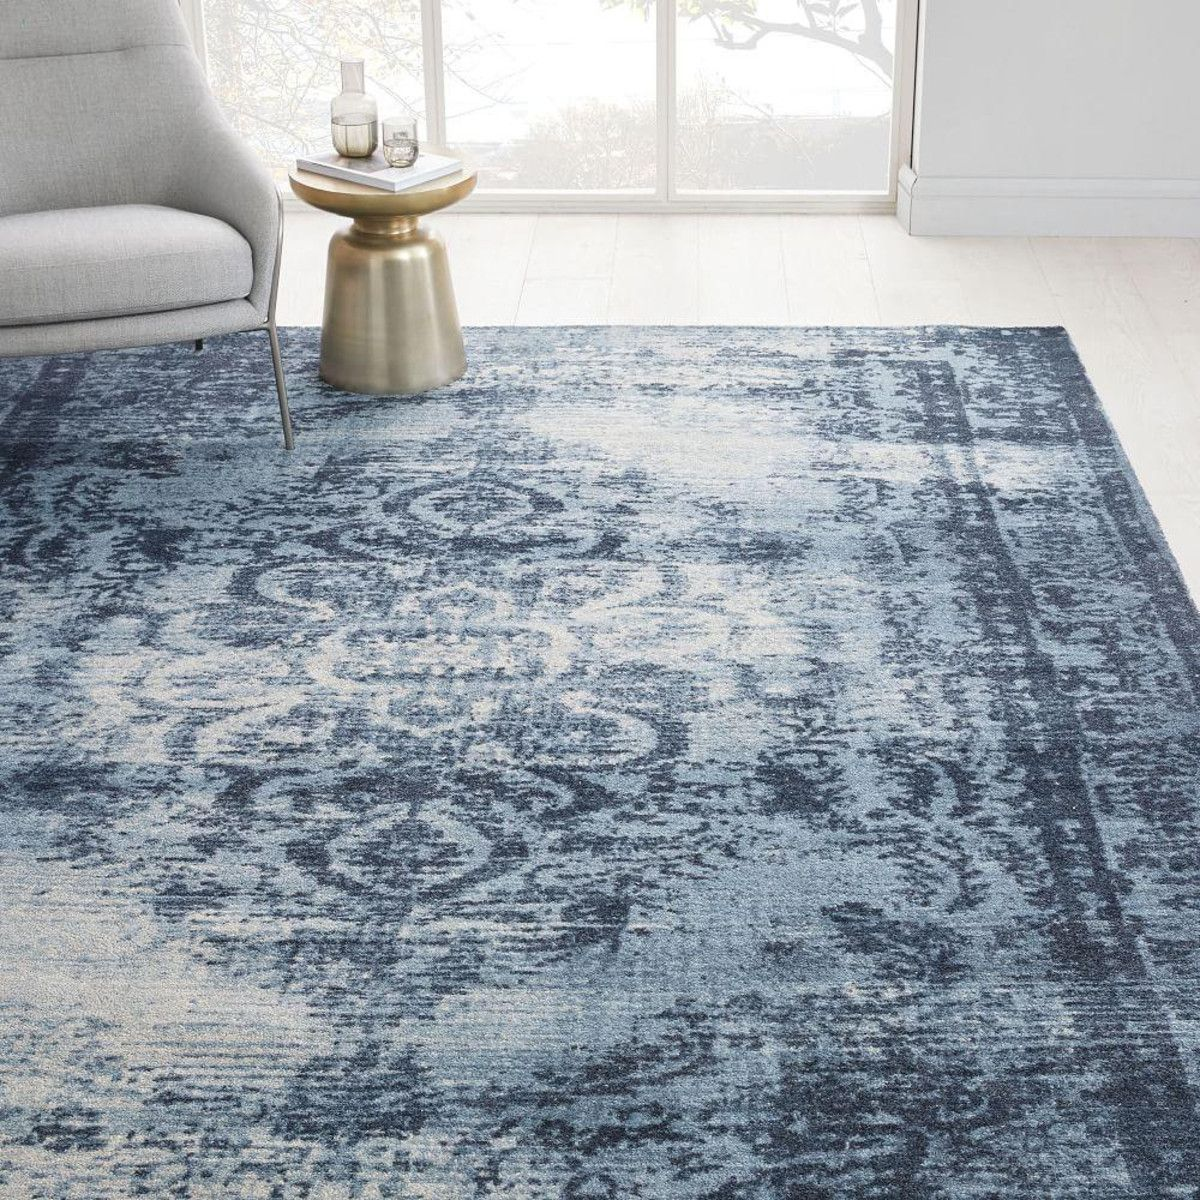 Distressed Arabesque Wool Rug Midnight With Images Wool Rug